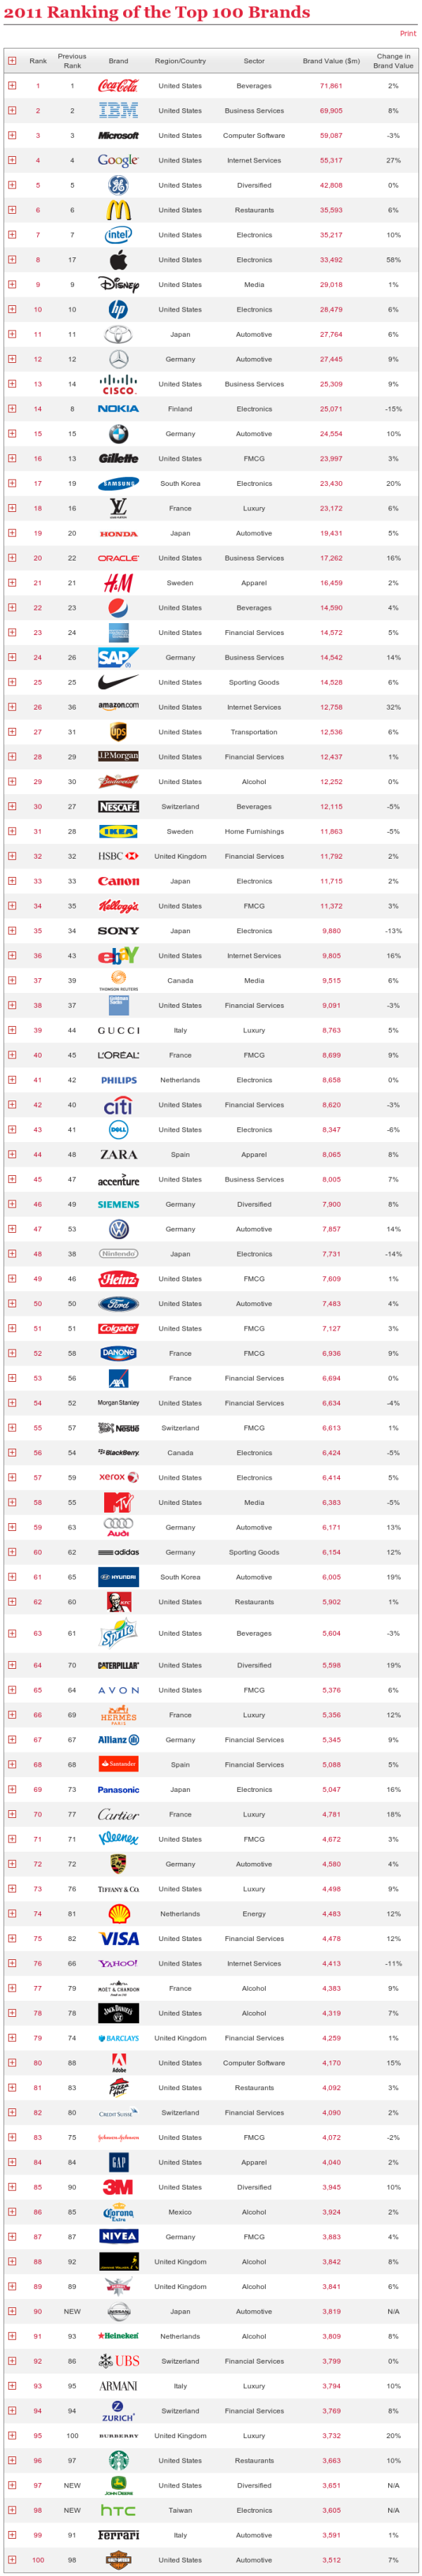 Interbrand - Best Global Brands 2011 - Top 100 brands